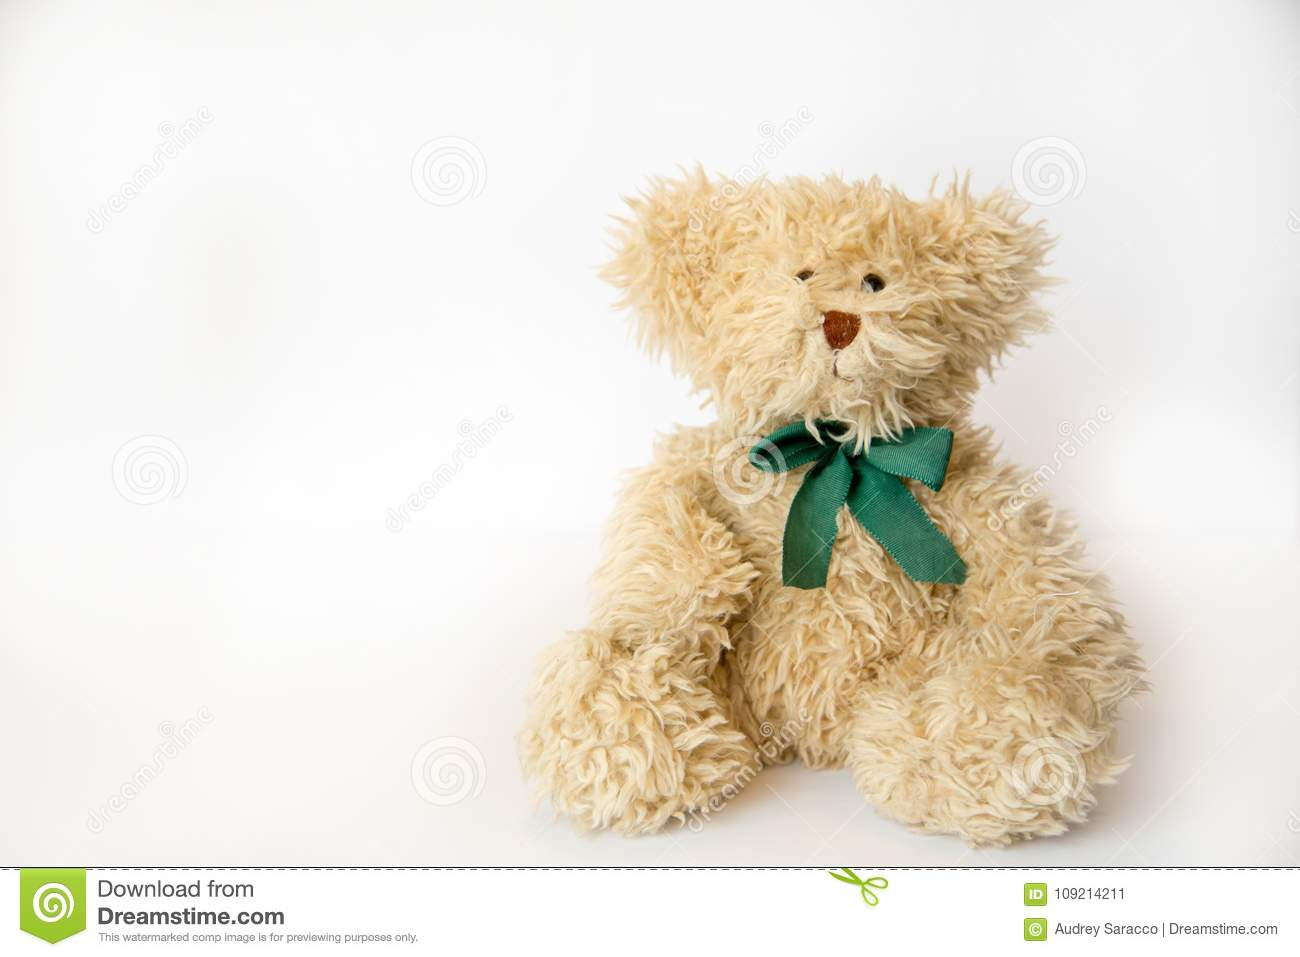 Download Animal, Gold, Furry, One, Romantic, Soft, Doll, Revival, Cute, Presents, Fun, Fur, Little, Single, Gift, Plush, Studio, Bear, Toy, Stock Image - Image of brown, green: 109214211